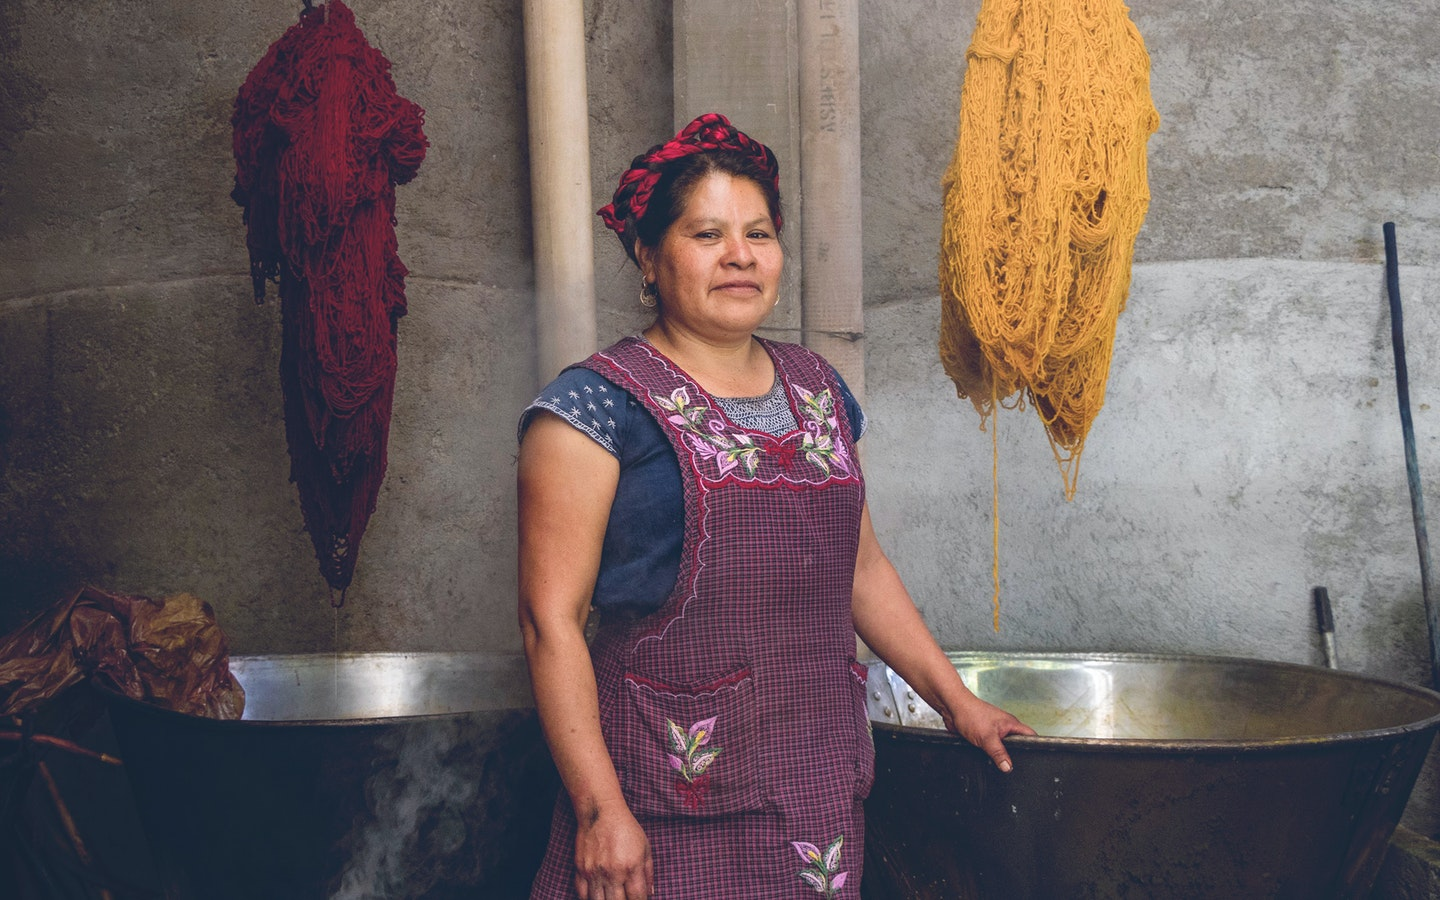 Learn natural fabric dyeing techniques in Oaxaca, Mexico from locala Zapotec artisans. Make your own natural dyes from cochineal, indigo, mosses and barks. #creativevacation #vawaa  #travelmexico #oaxaca #creativity #naturalfabricdyeing #naturaldyes #slowtravel #cochineal #crafts #howtomake